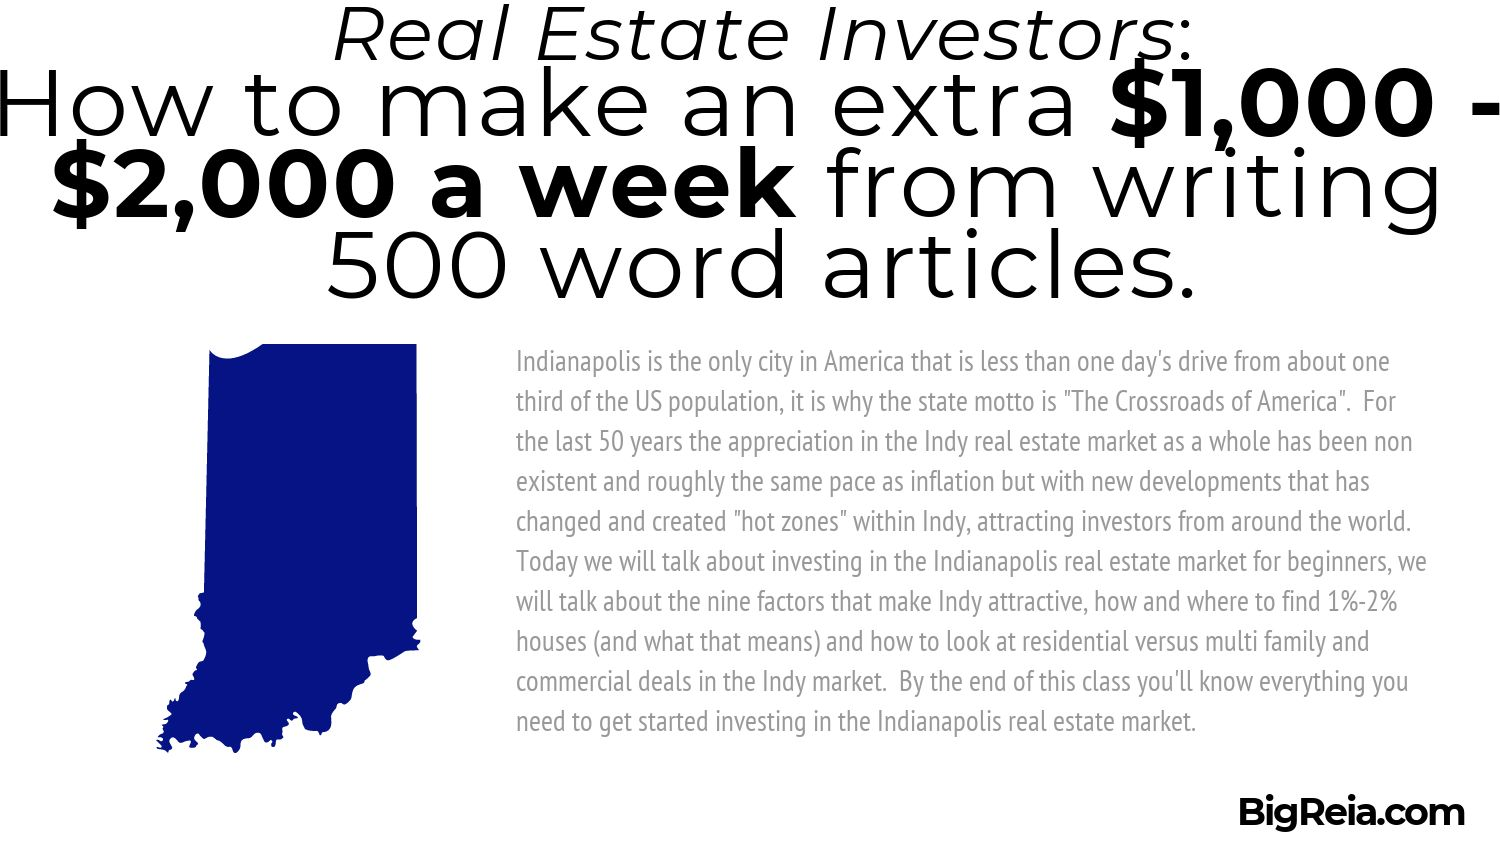 First paragraph Algorithm for Indiana real estate investors